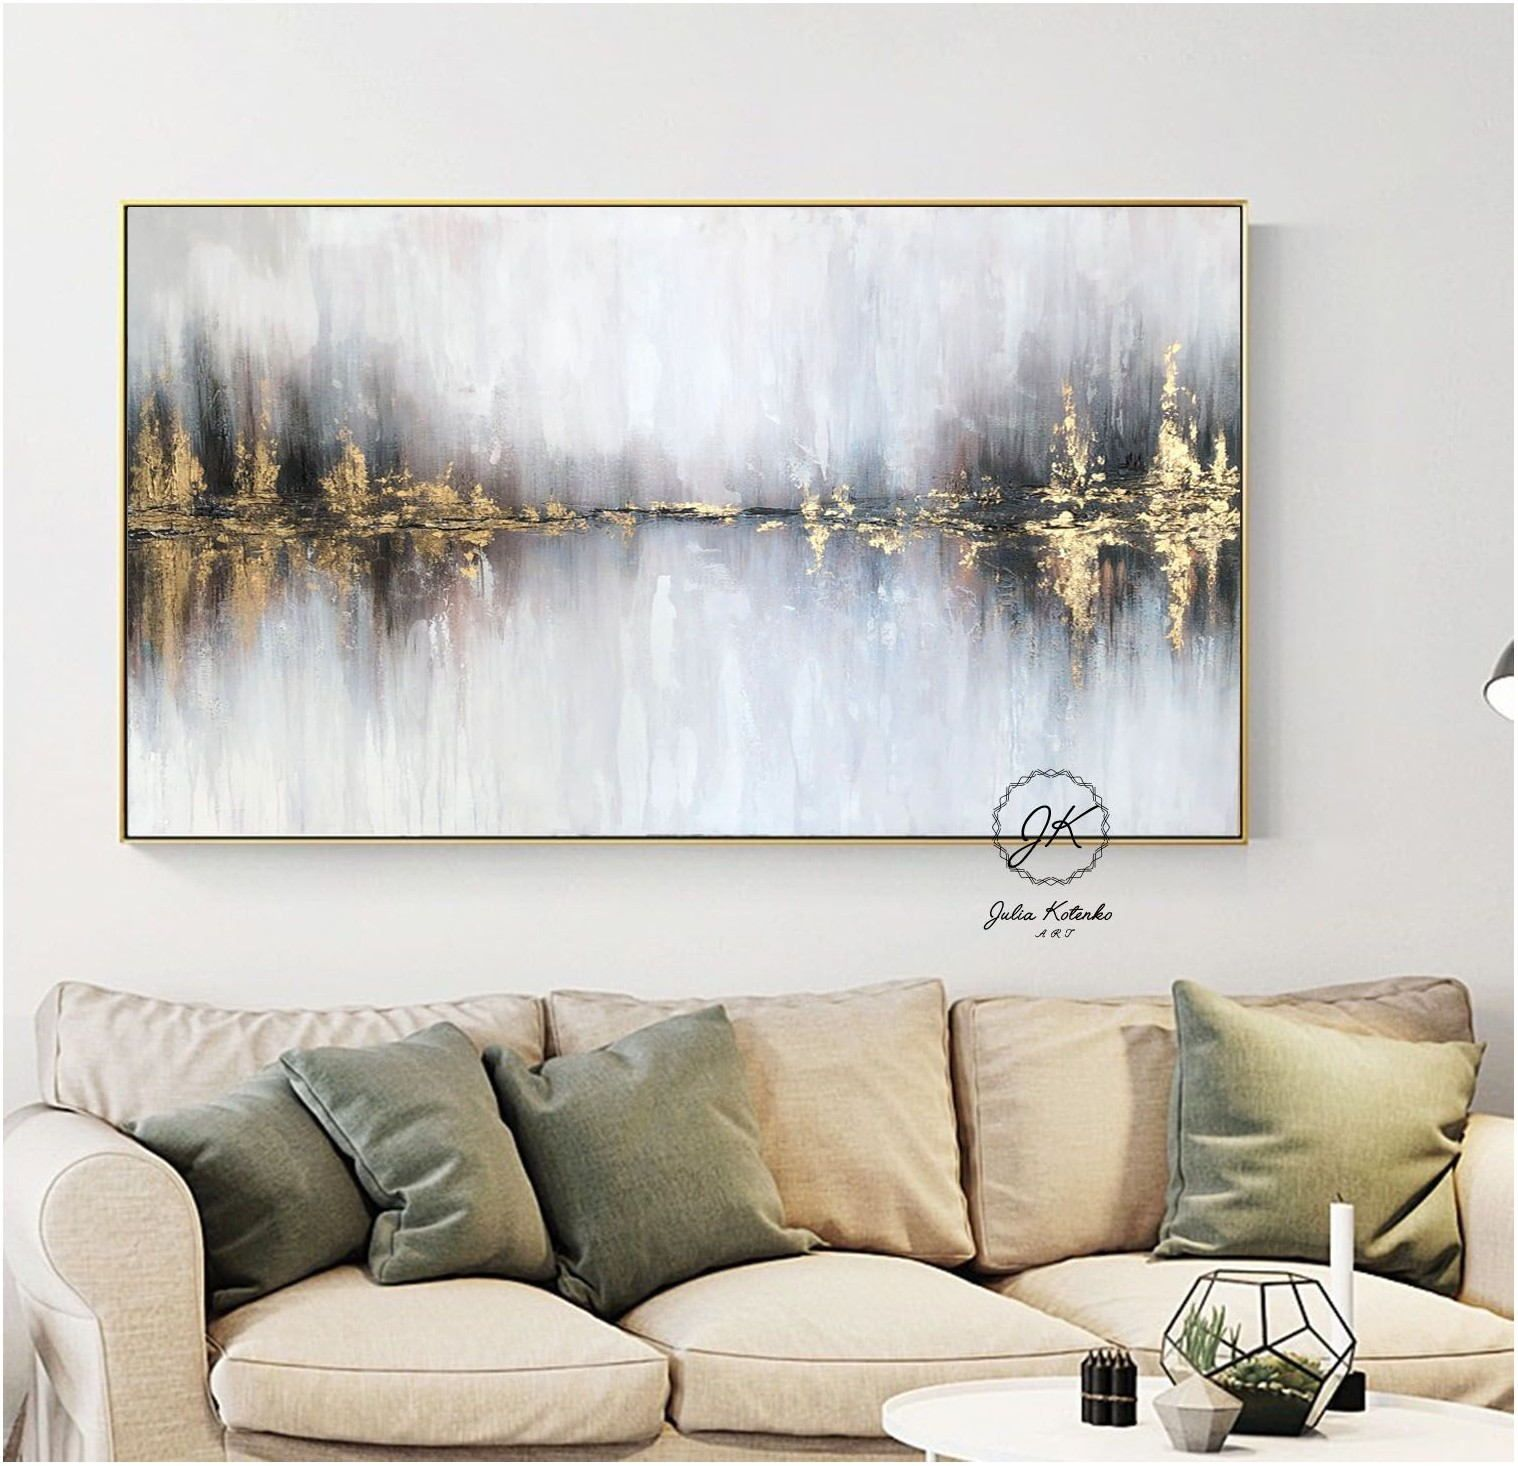 Acrylic Paint In Living Room Walls Living Room Canvas Abstract Painting Acrylic Beautiful Abstract Painting